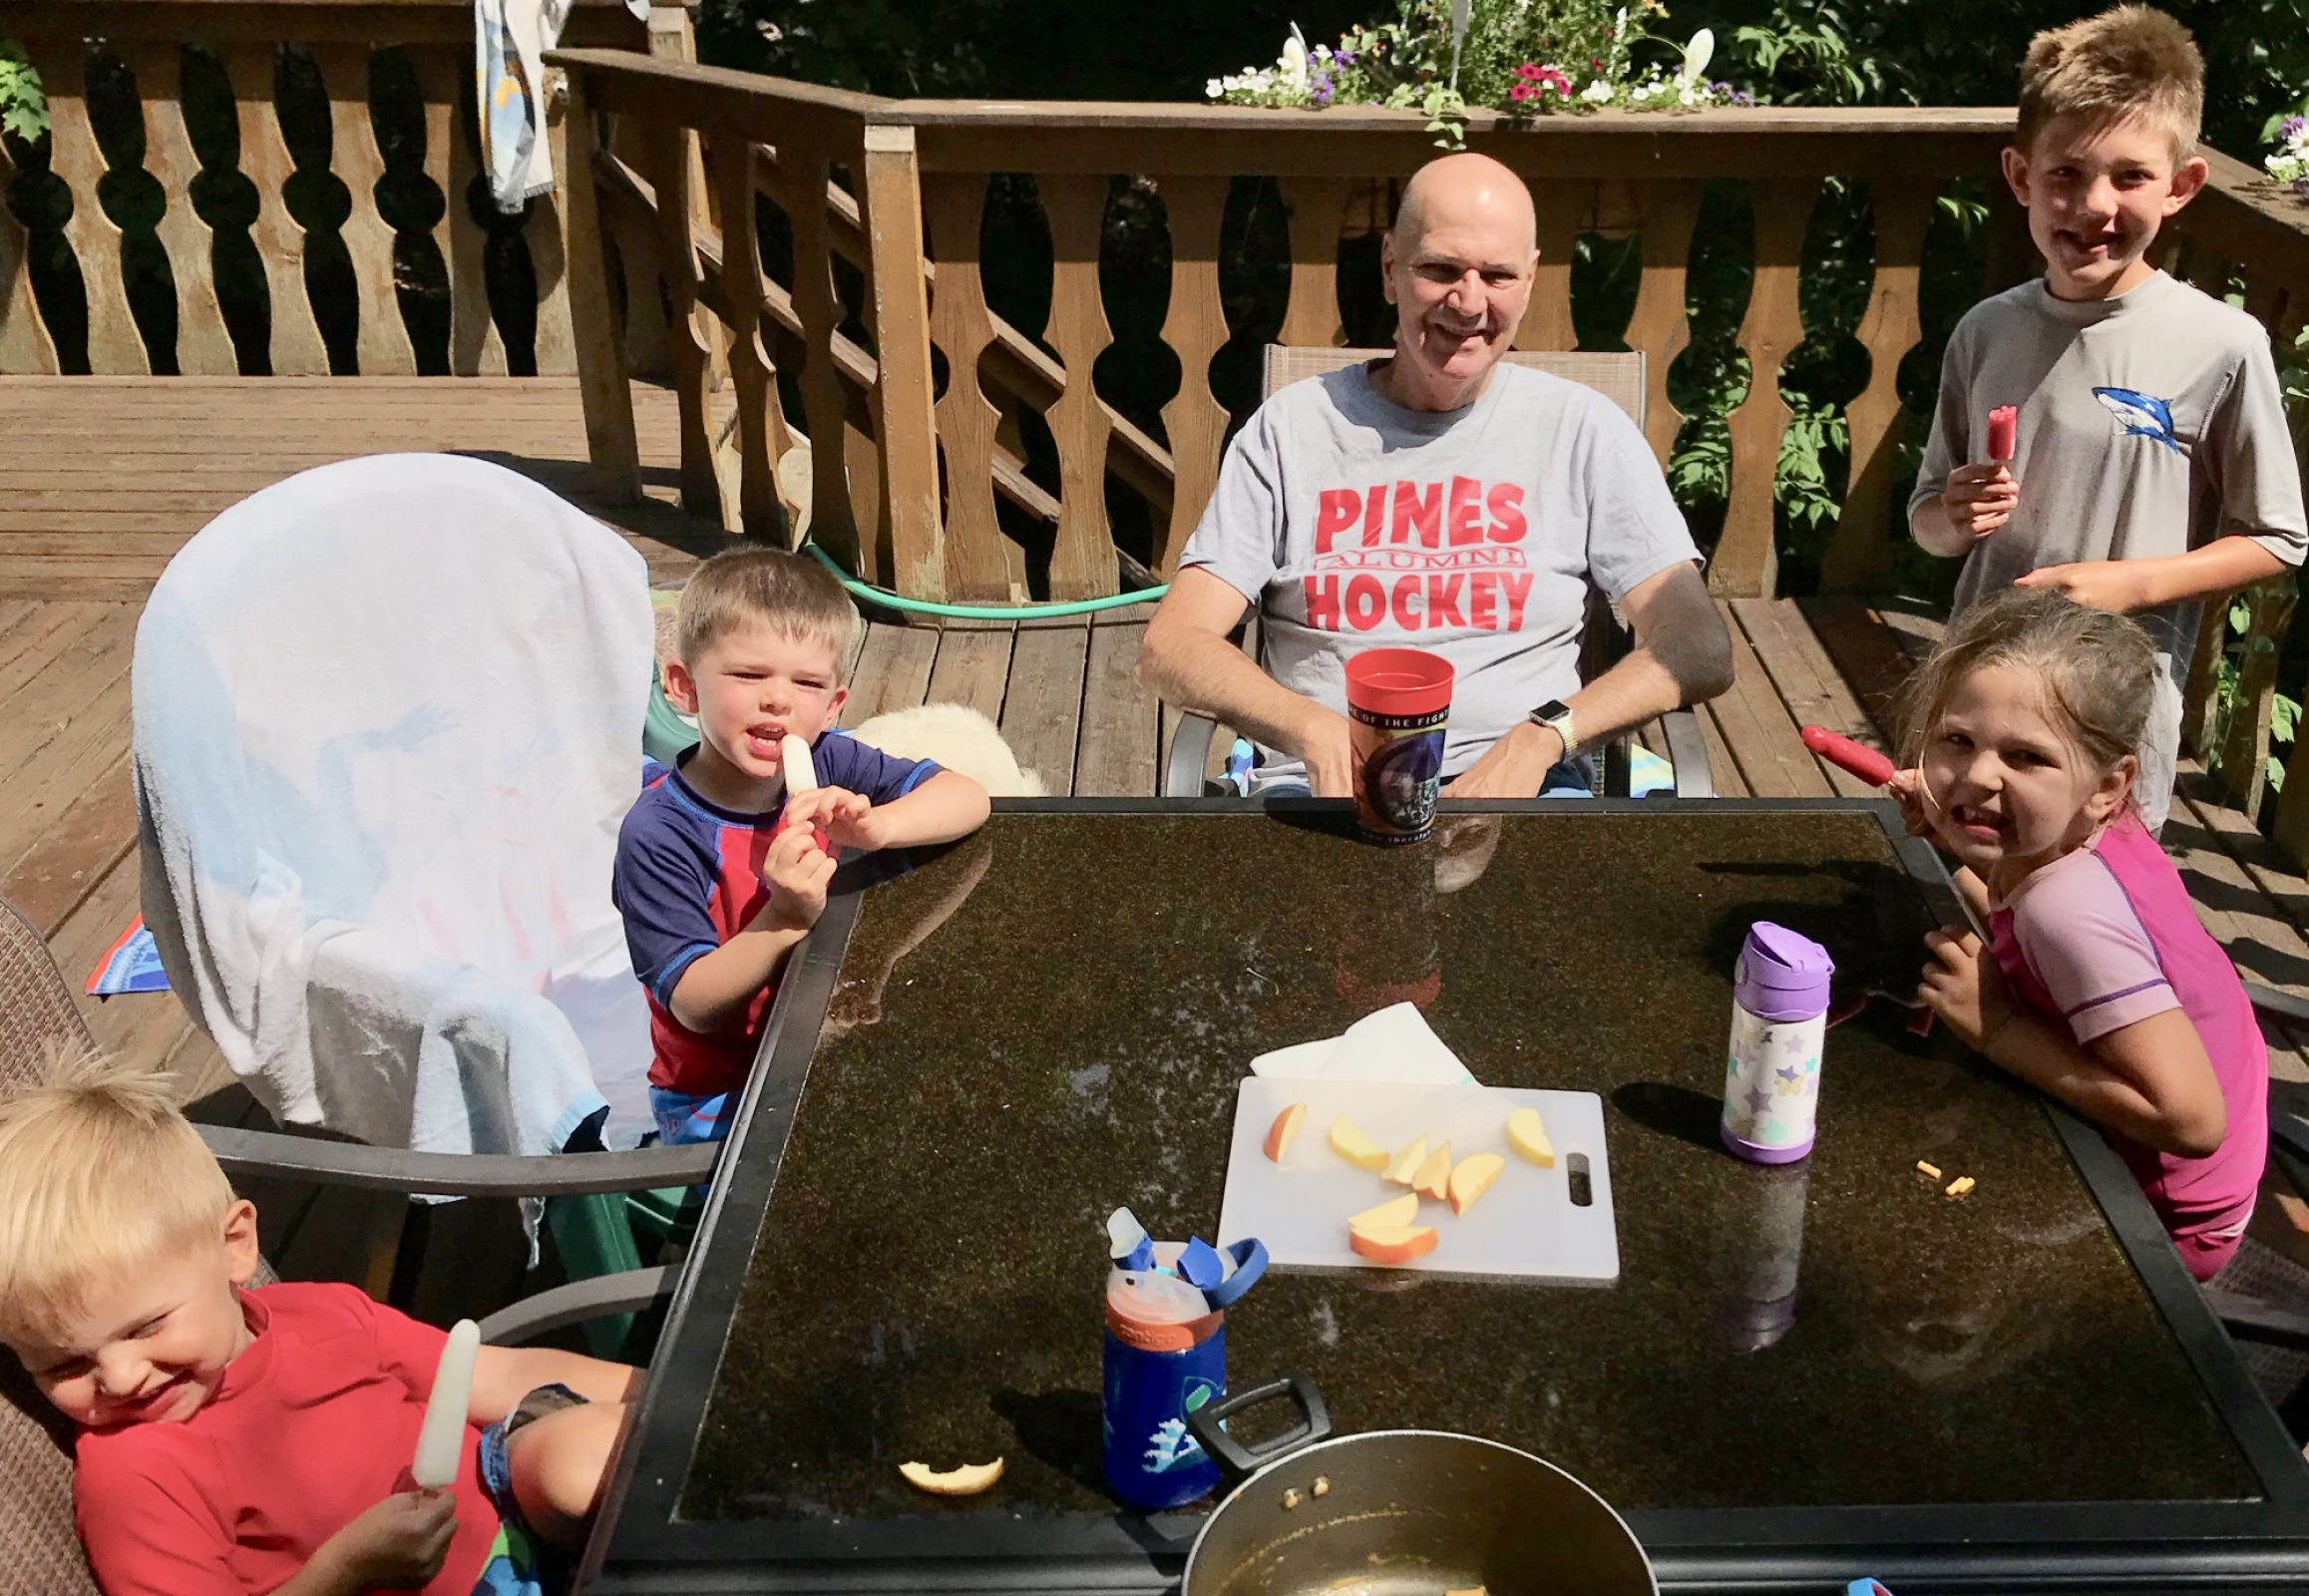 picnic lunches bring smiles and popsicles: Sawyer, Colden, Papa,